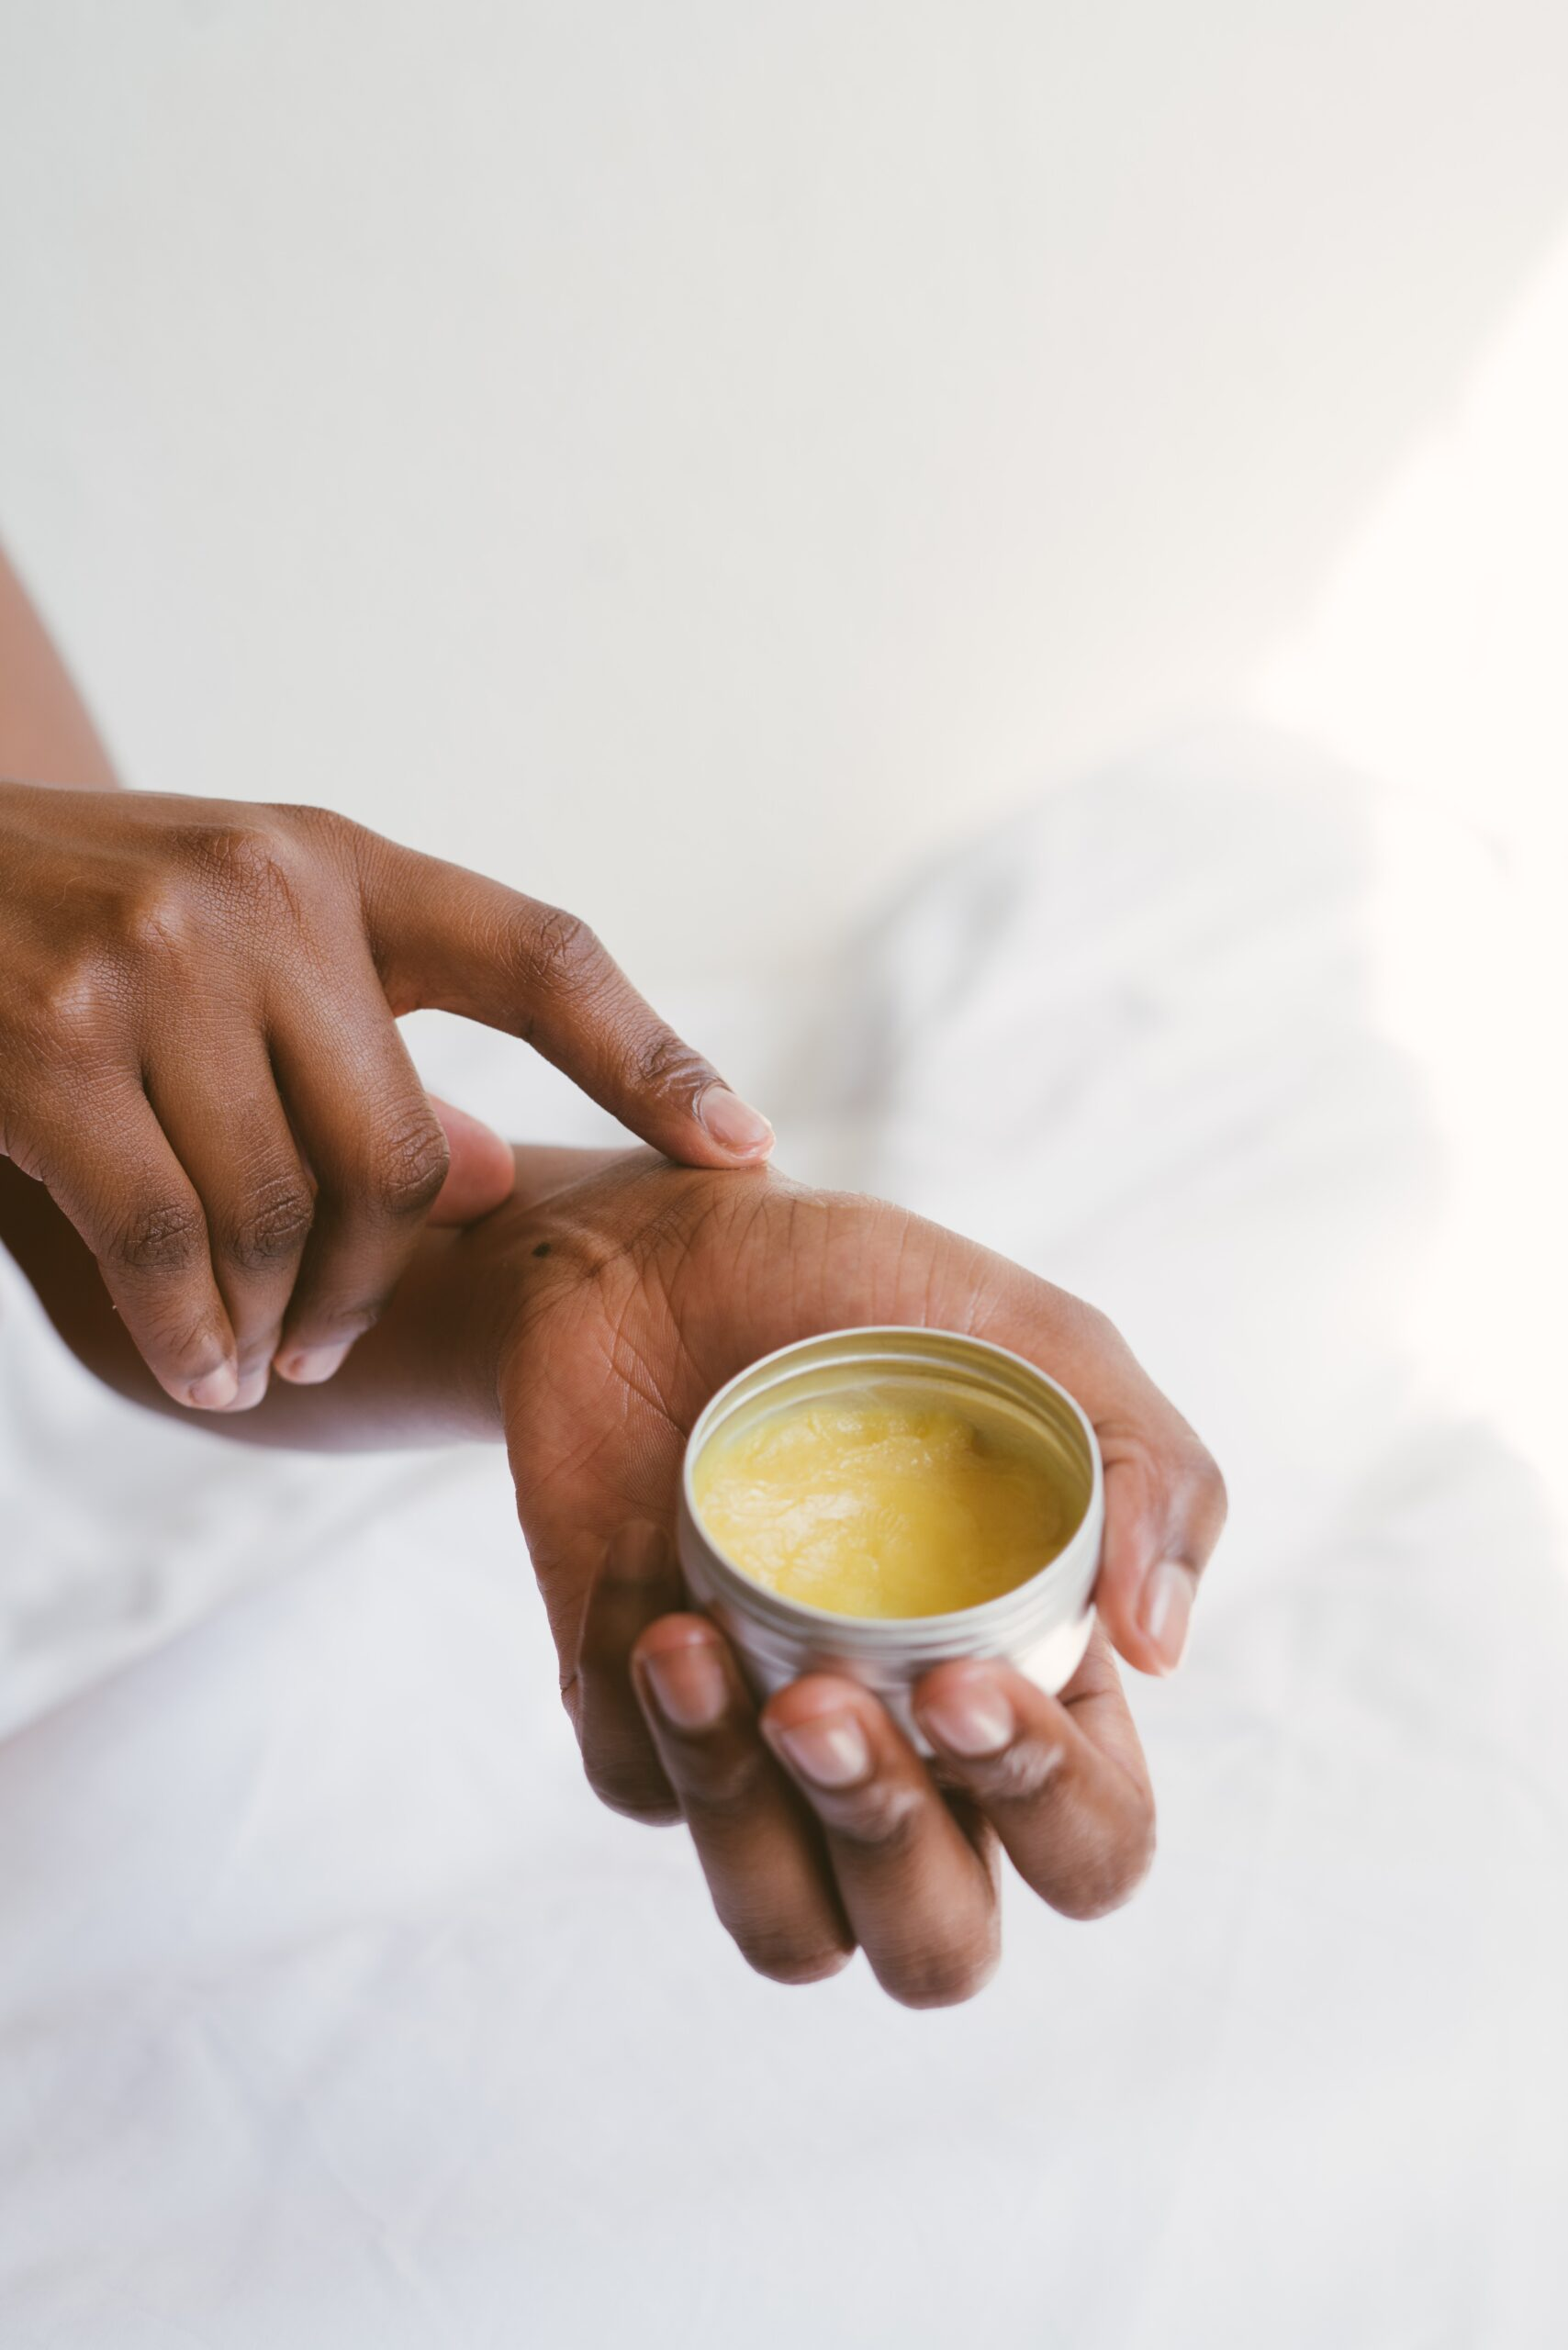 CBD Topicals Cream for skin problems | Beauty & Health | Elle Blonde Luxury Lifestyle Destination Blog